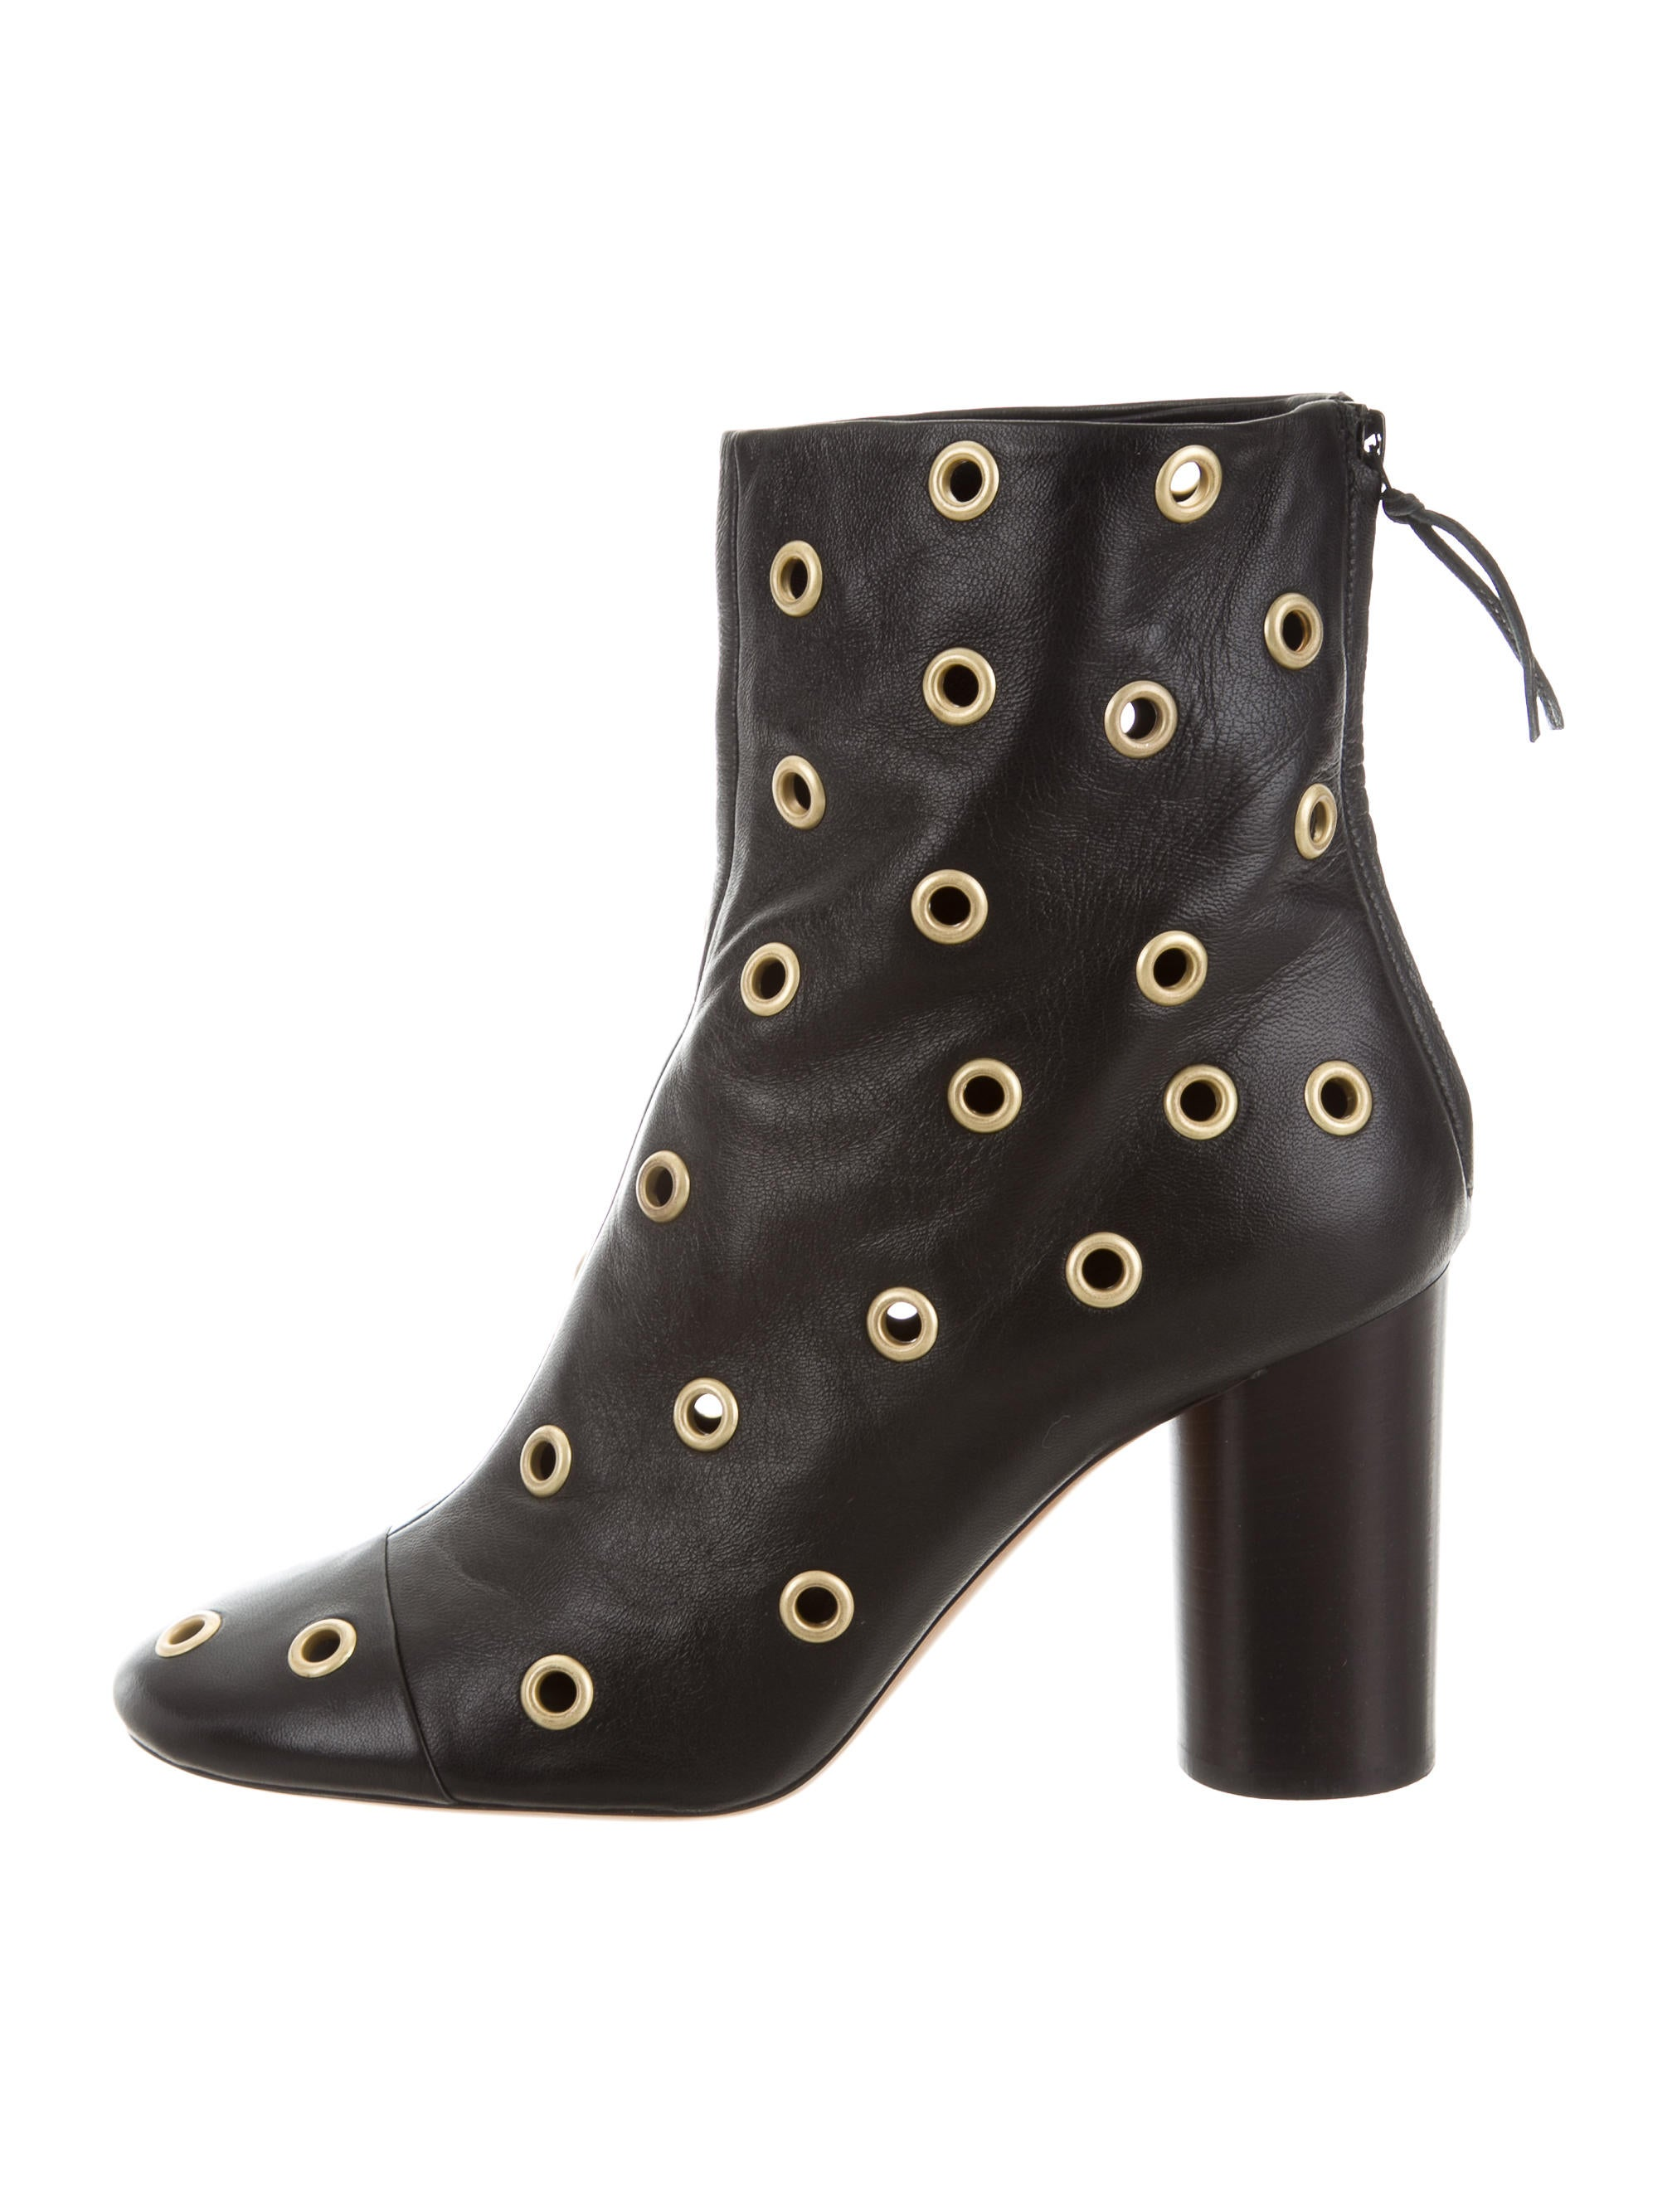 Isabel Marant Leather Grommet Ankle Boots free shipping new styles ecU1Xo